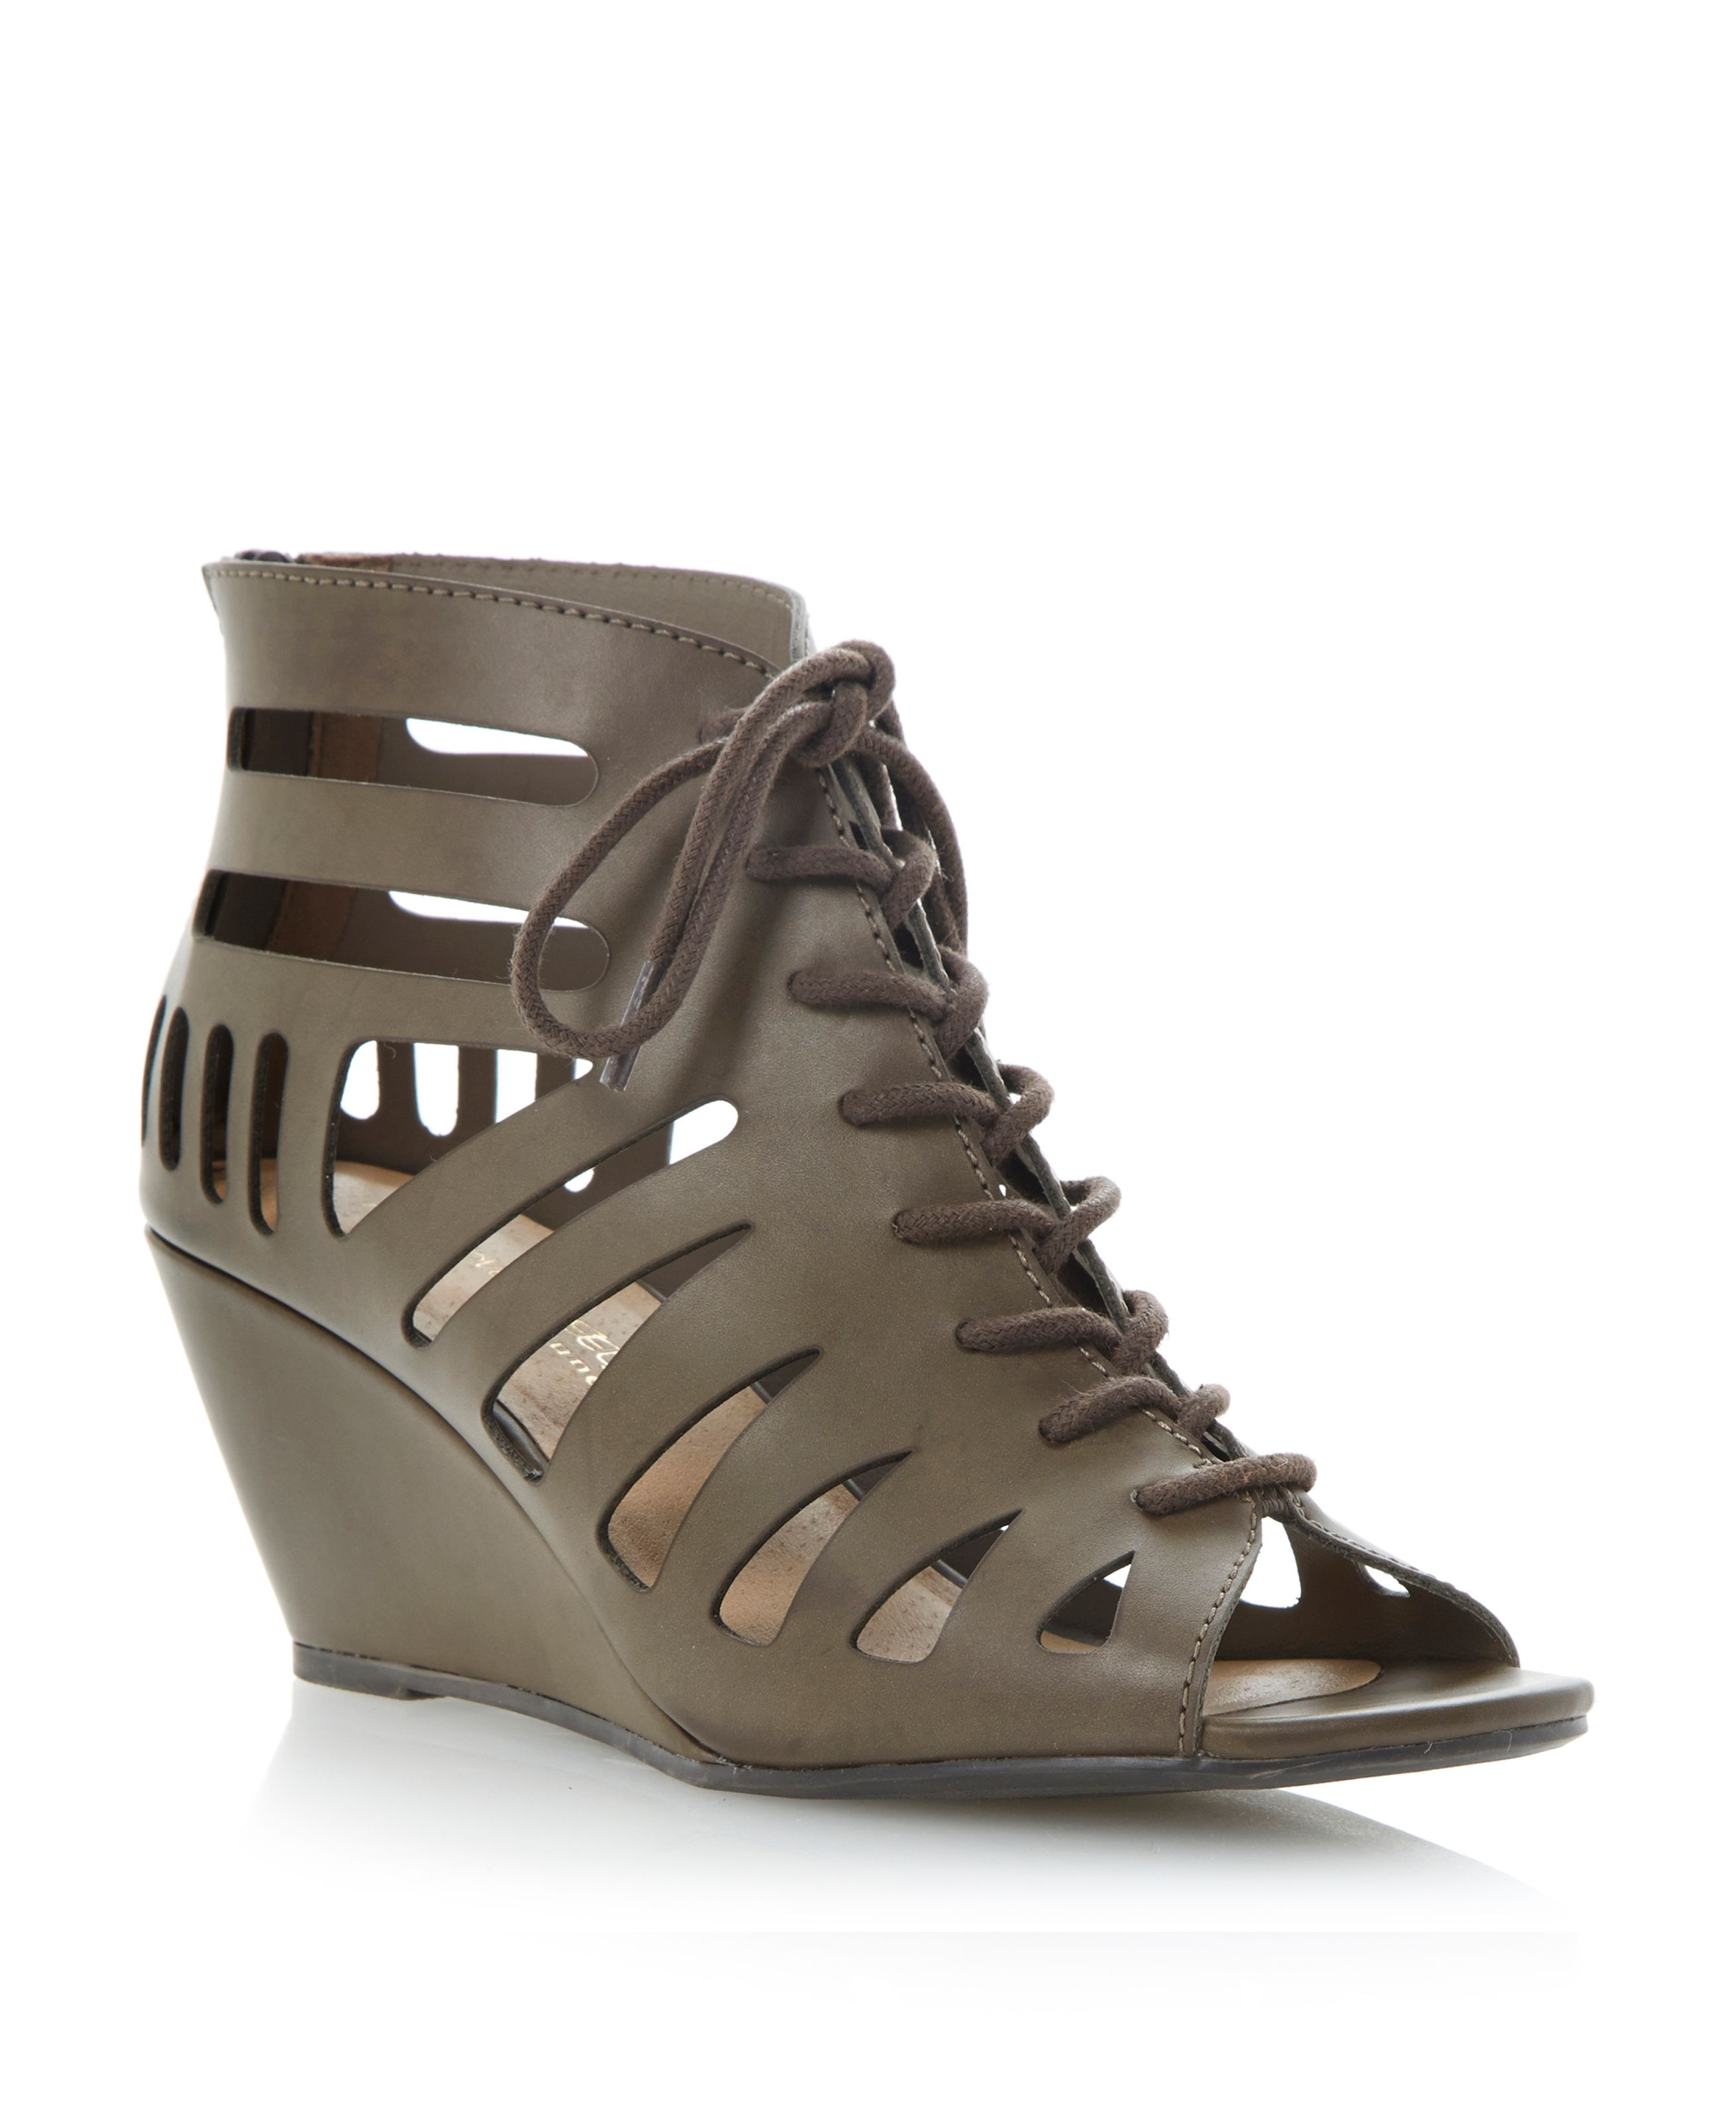 Ghillie lace up wedge heeled sandals